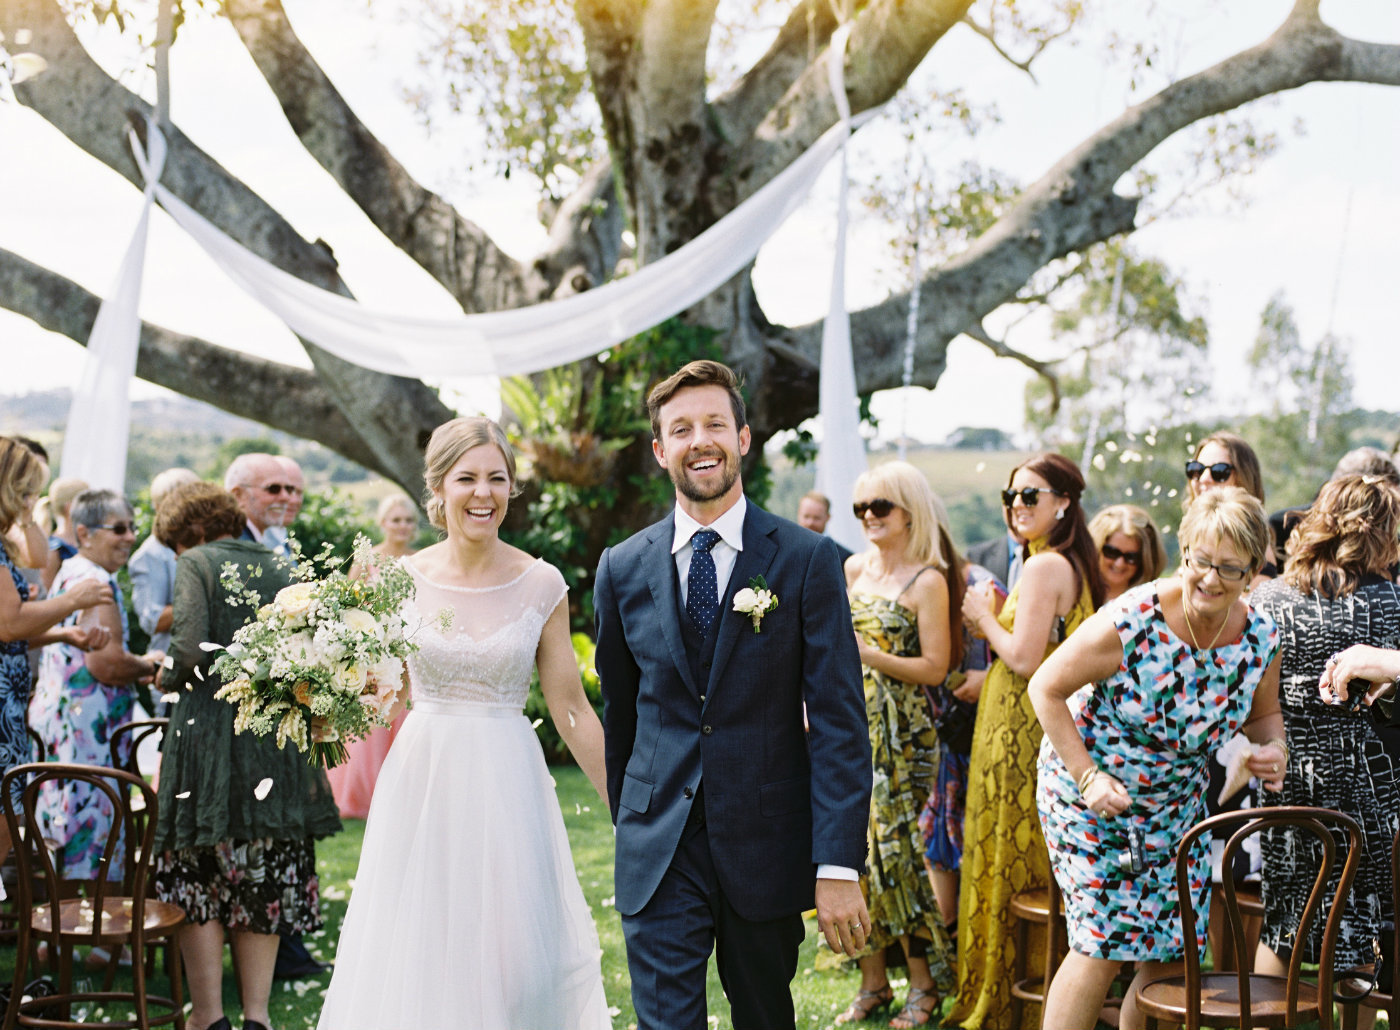 Byron bay wedding at Velleron House